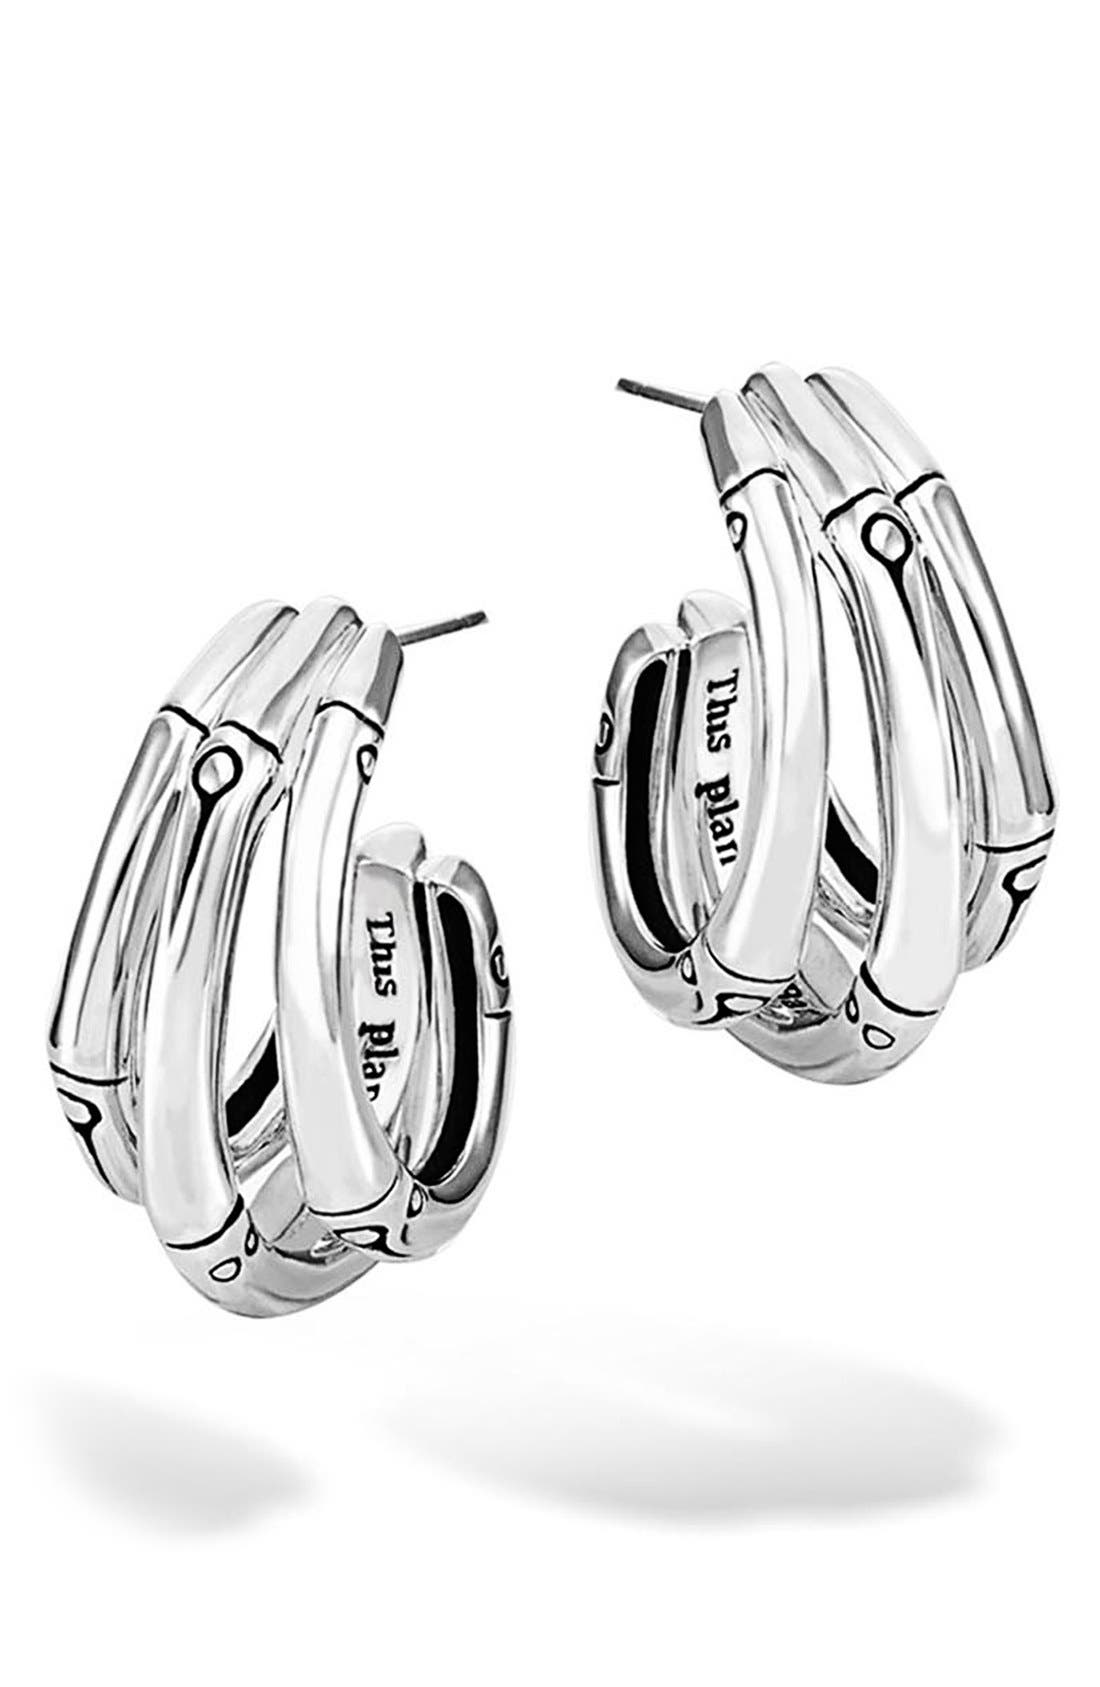 Bamboo Small Hoop Earrings,                         Main,                         color, Silver